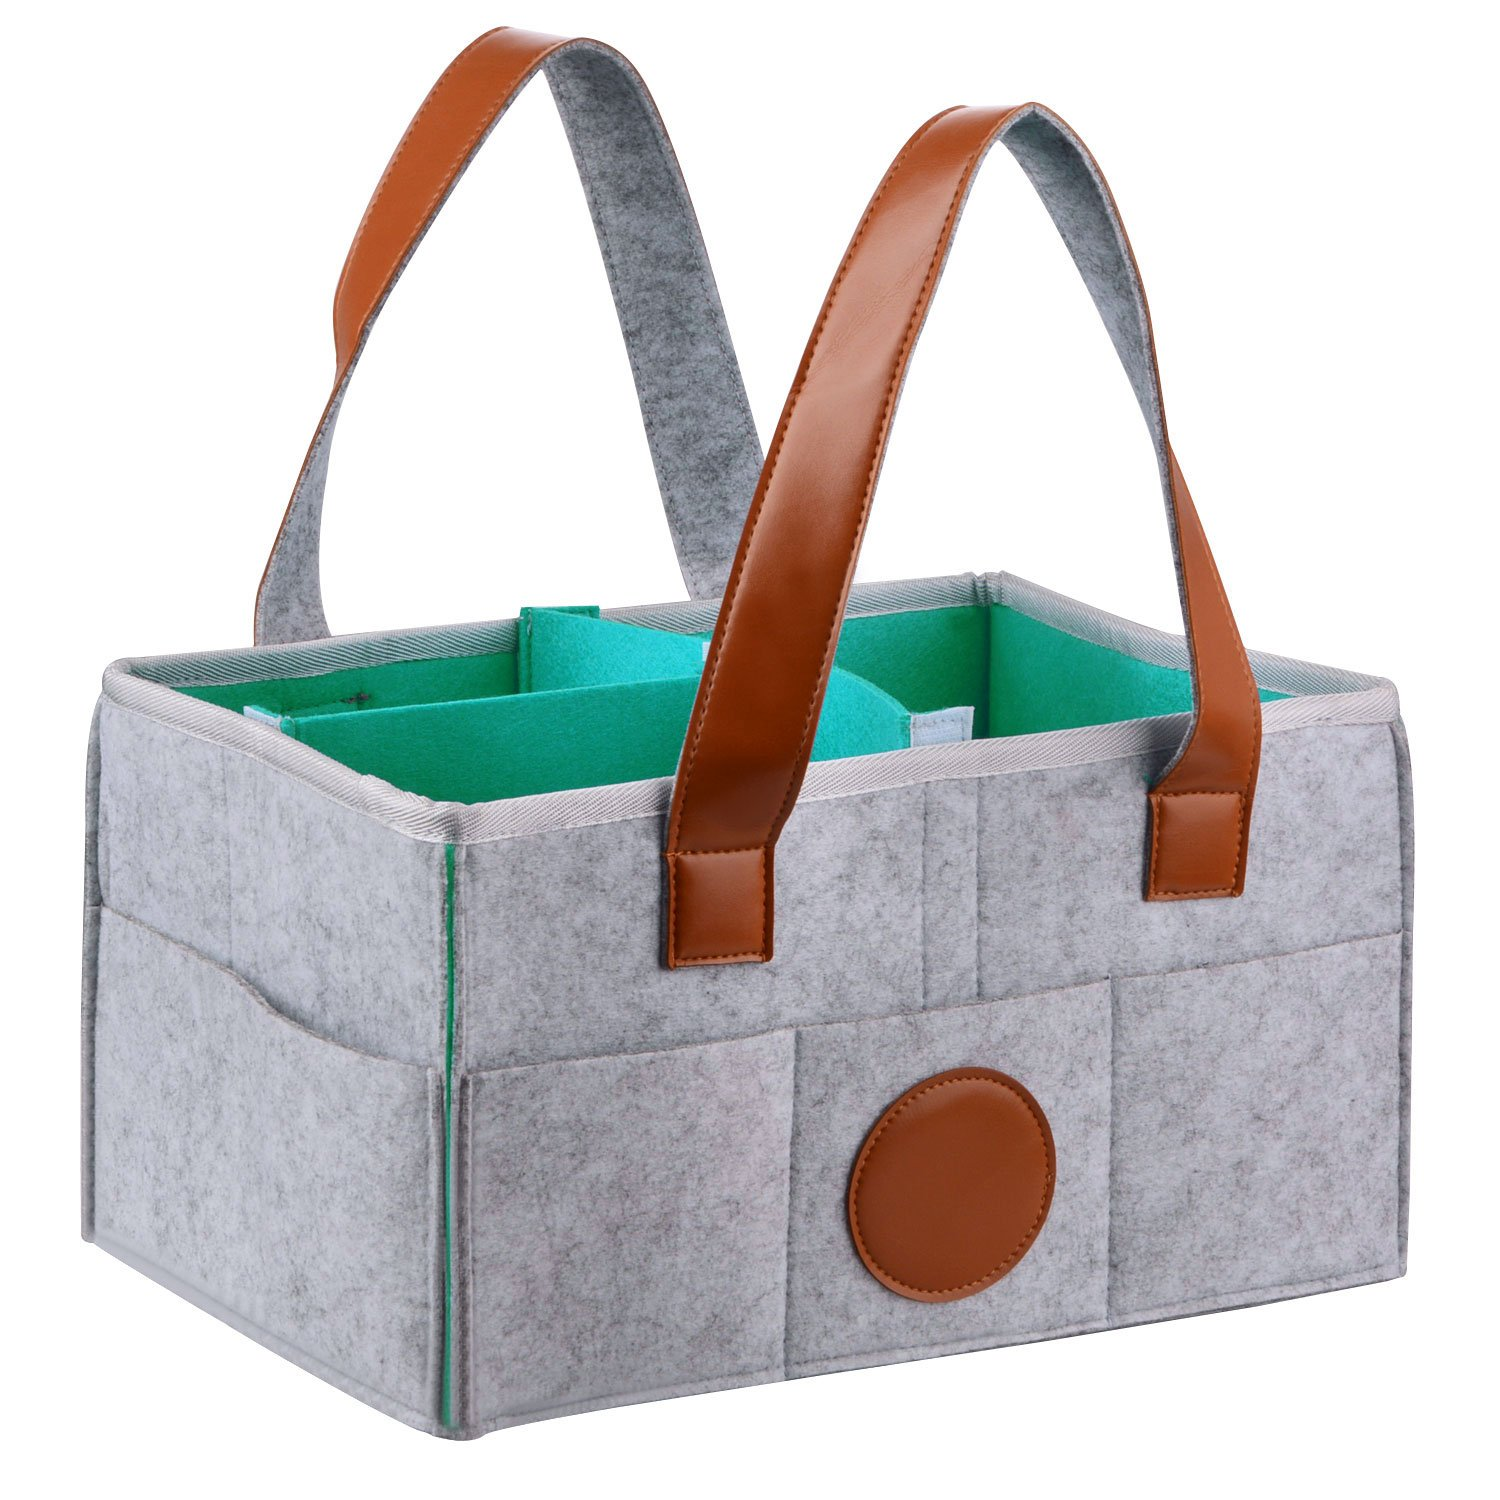 lulalula Large Baby Diaper Caddy, Portable Nappy Organizer Bag, Nursery Storage Organizer Bin, Grey Felt Baby Shower Gift Basket with Multi Pockets and Changeable Compartments